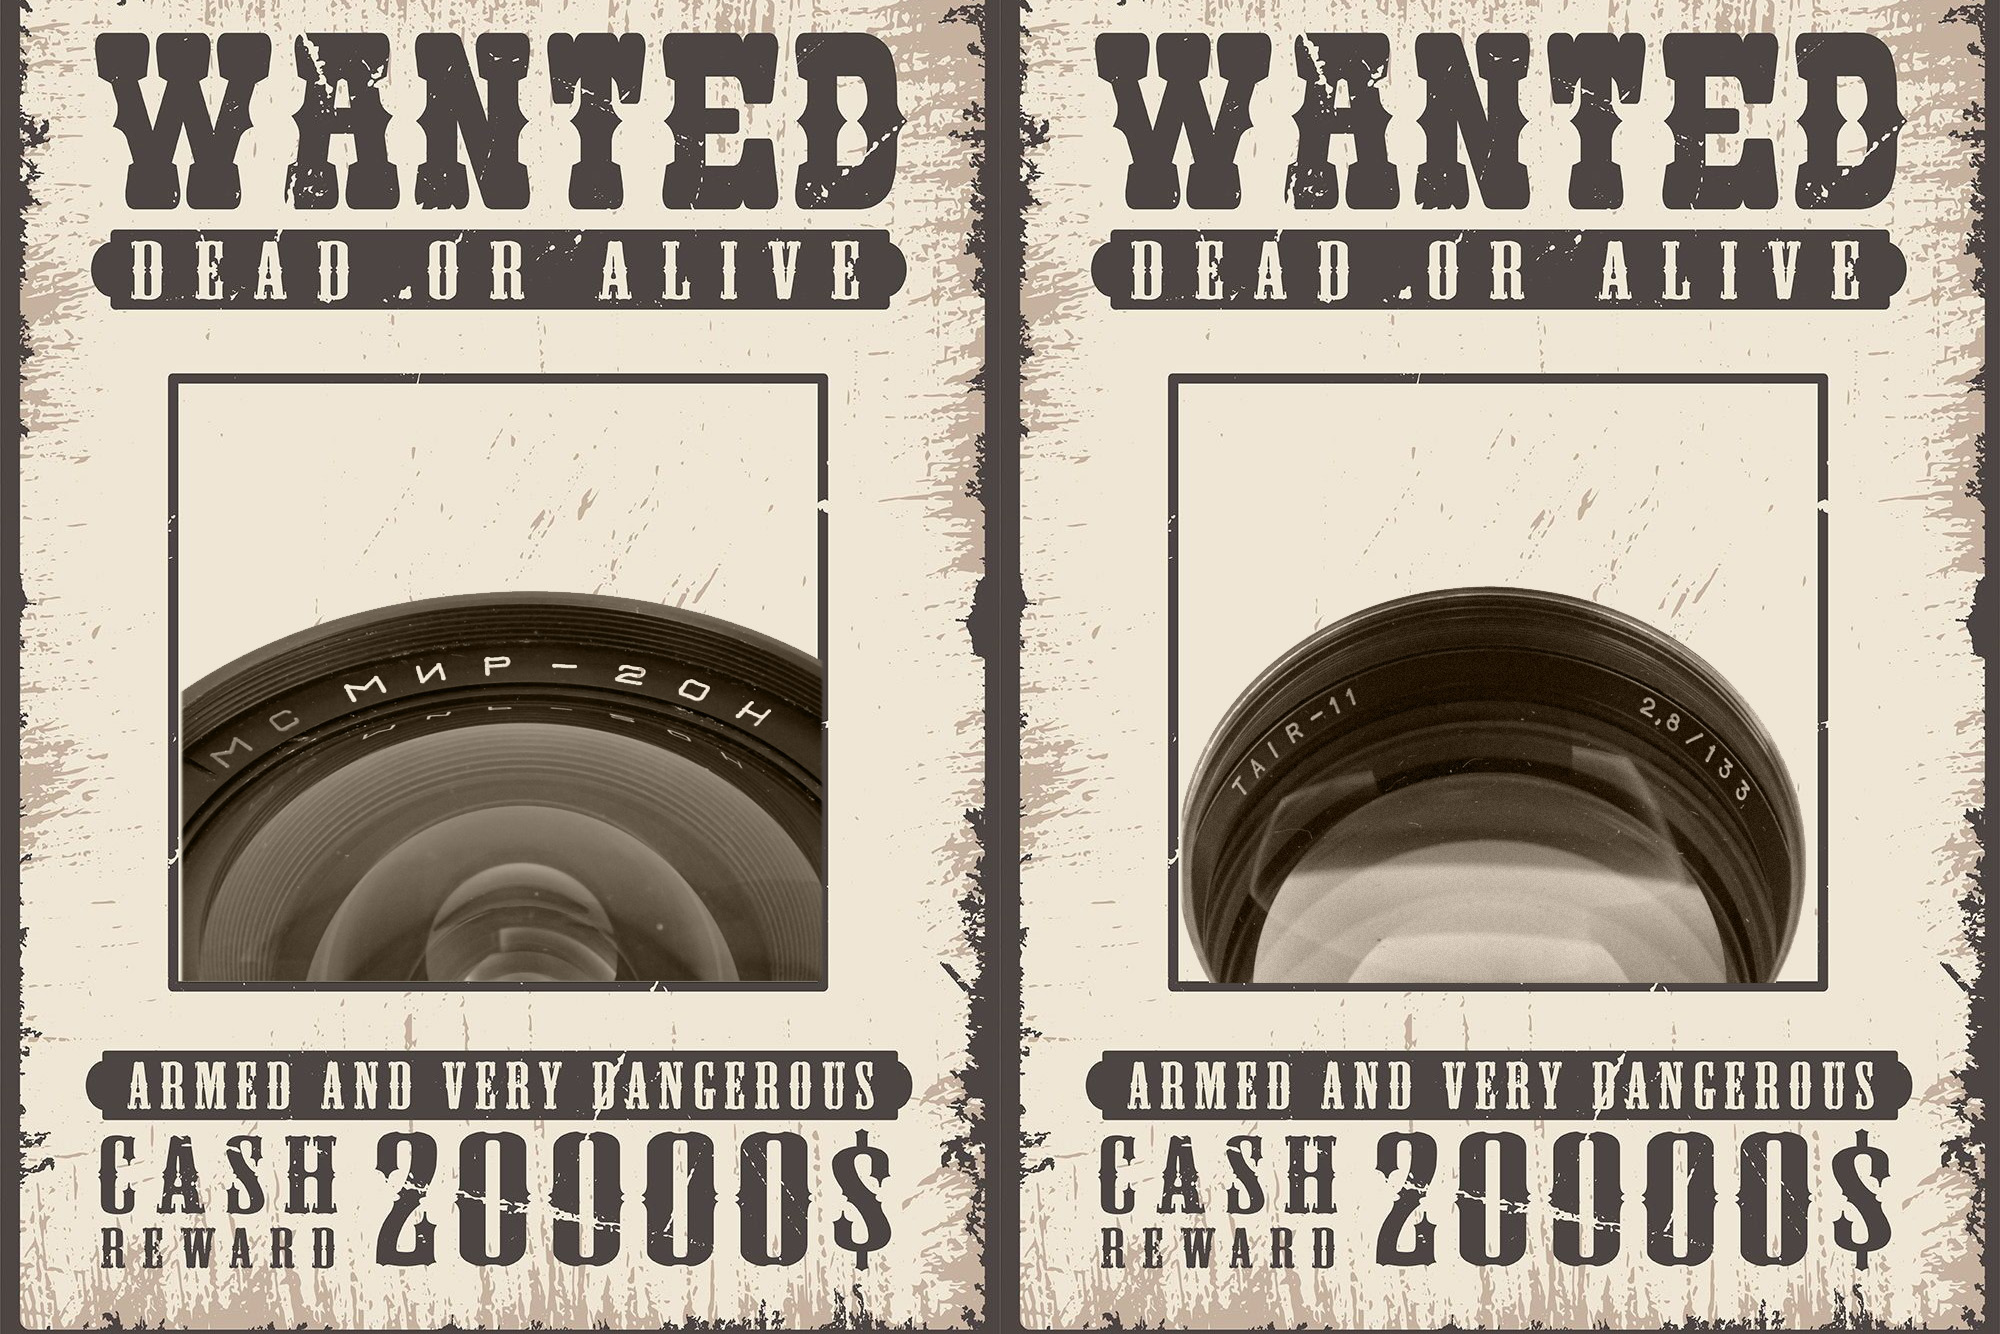 Soviet lenses are wanted!